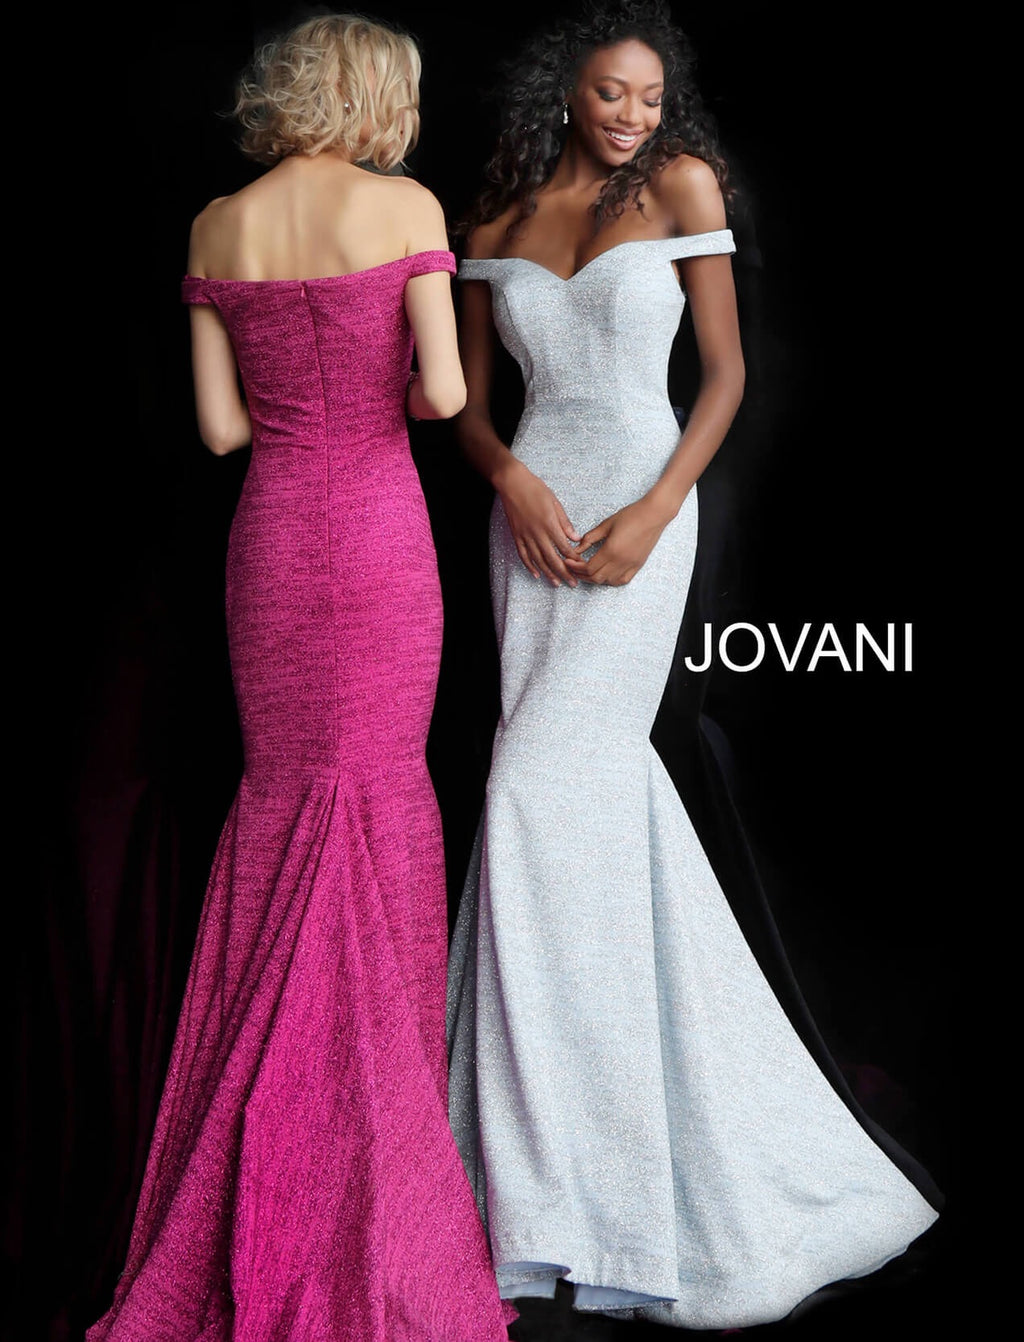 JOVANI 60122 Off Shoulder Glitter Evening Dress